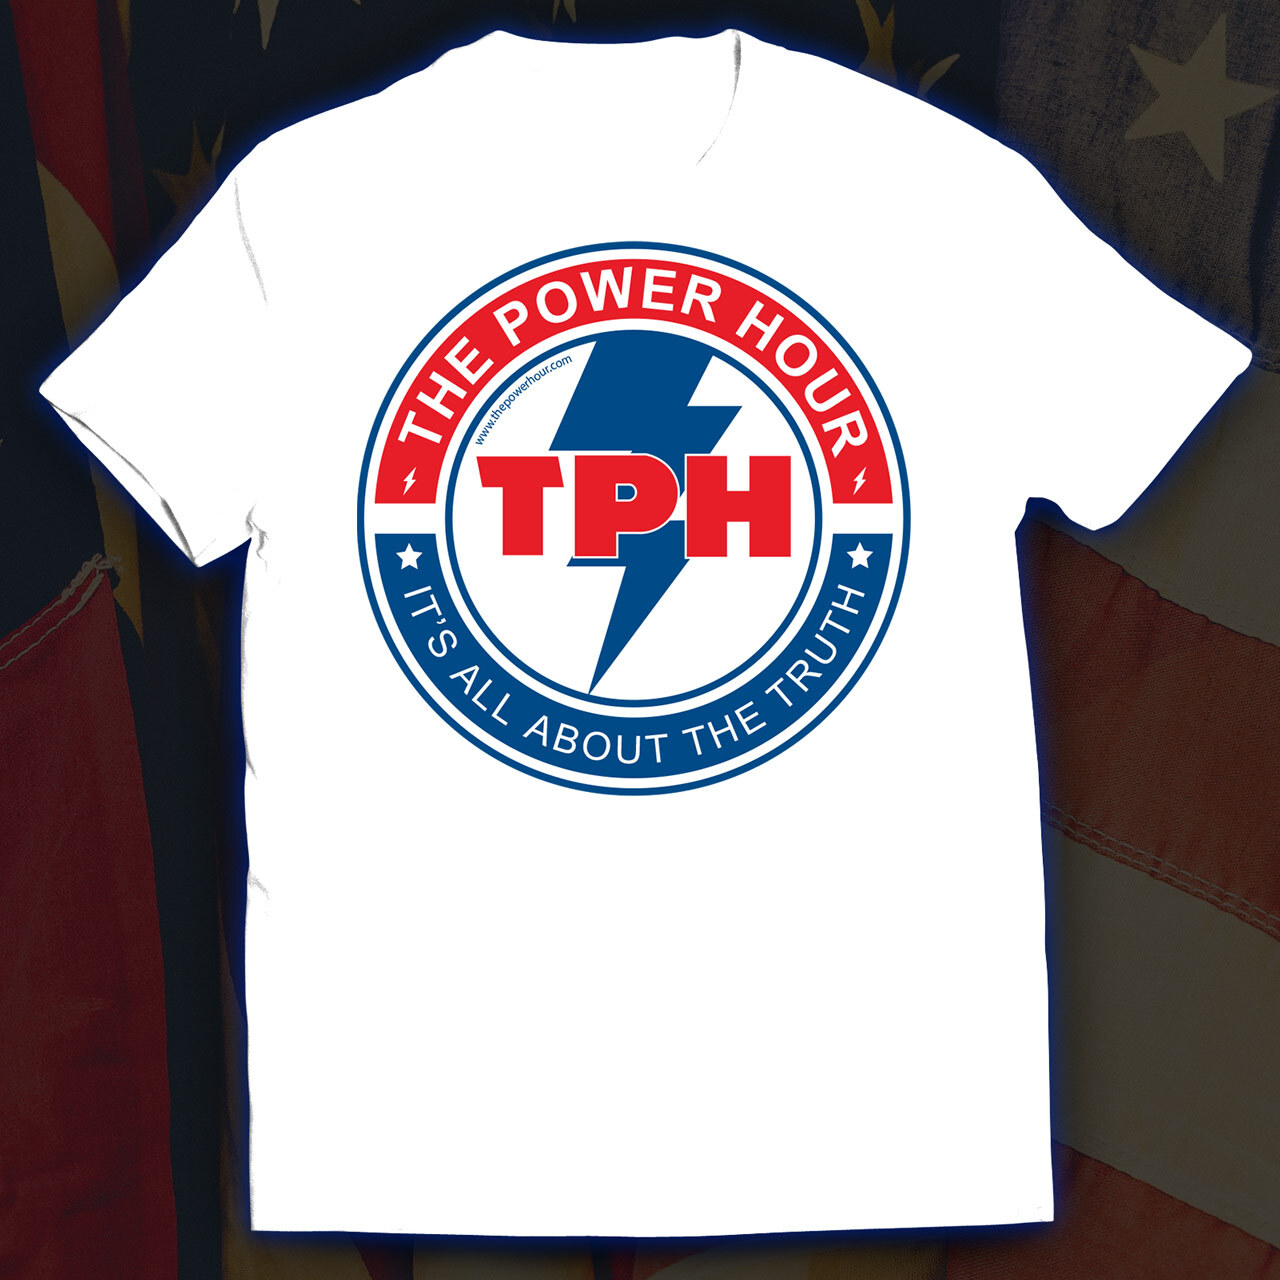 Power Hour T-Shirt (White)